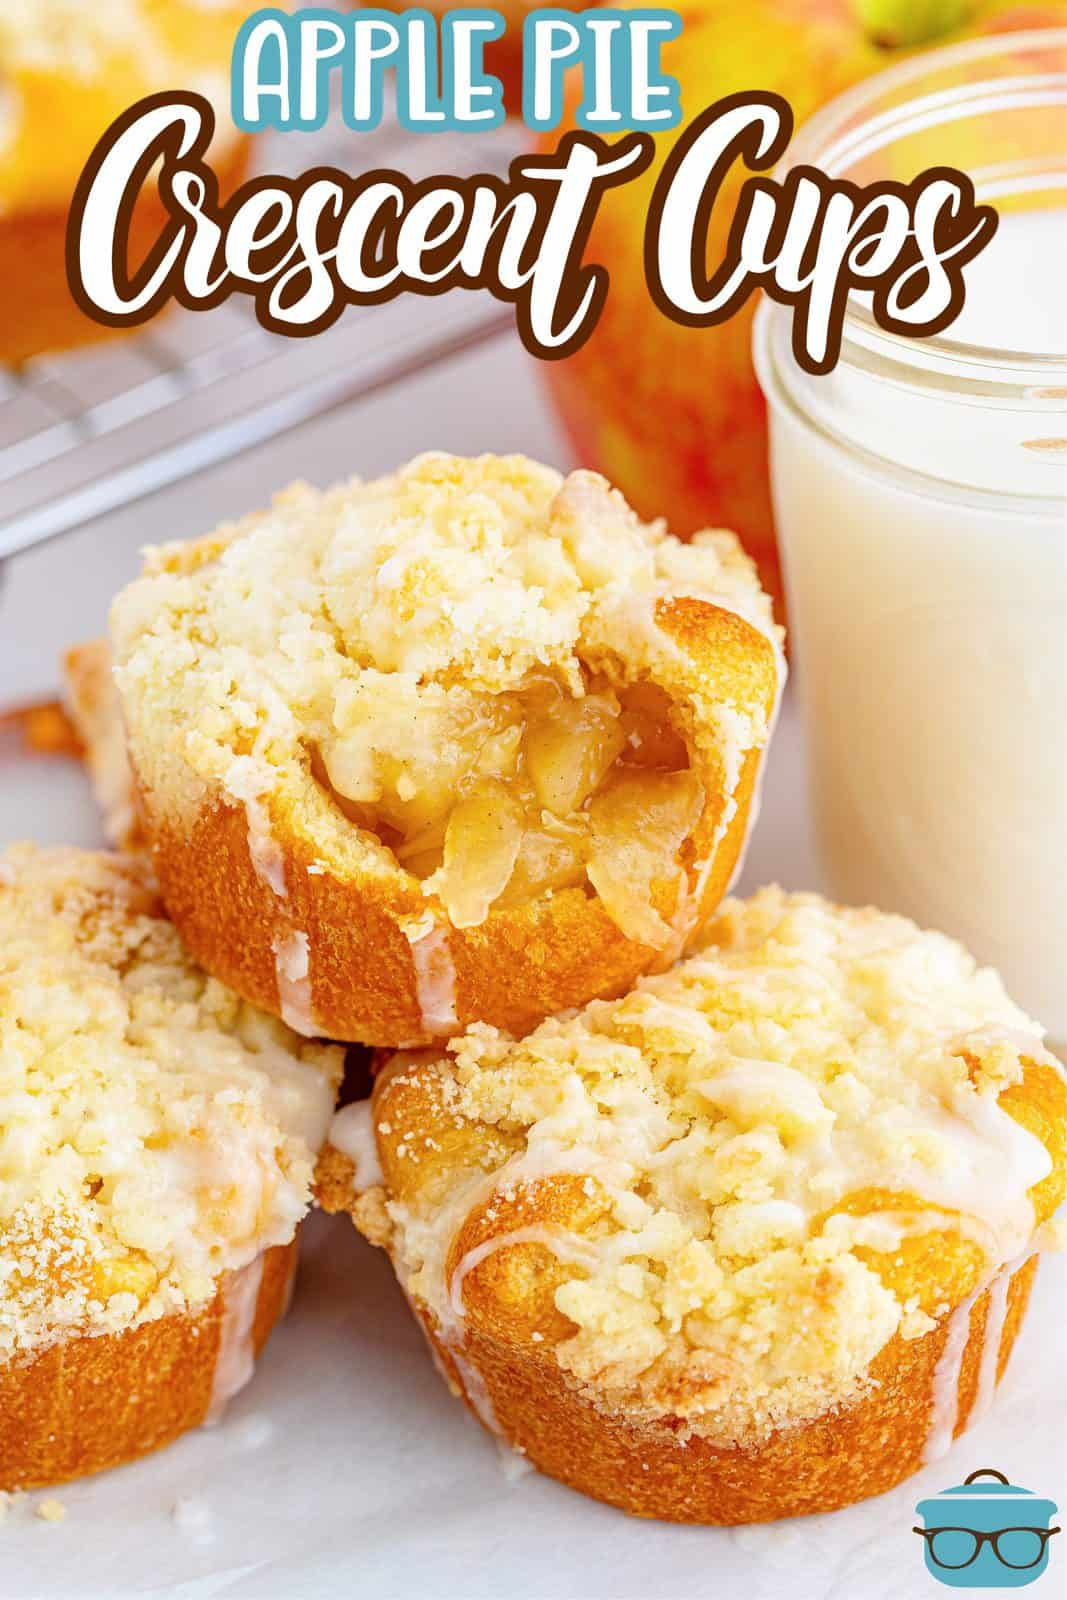 Pinterest image of Easy Apple Pie Cup Recipe stacked and glazed with bite taken out of one.